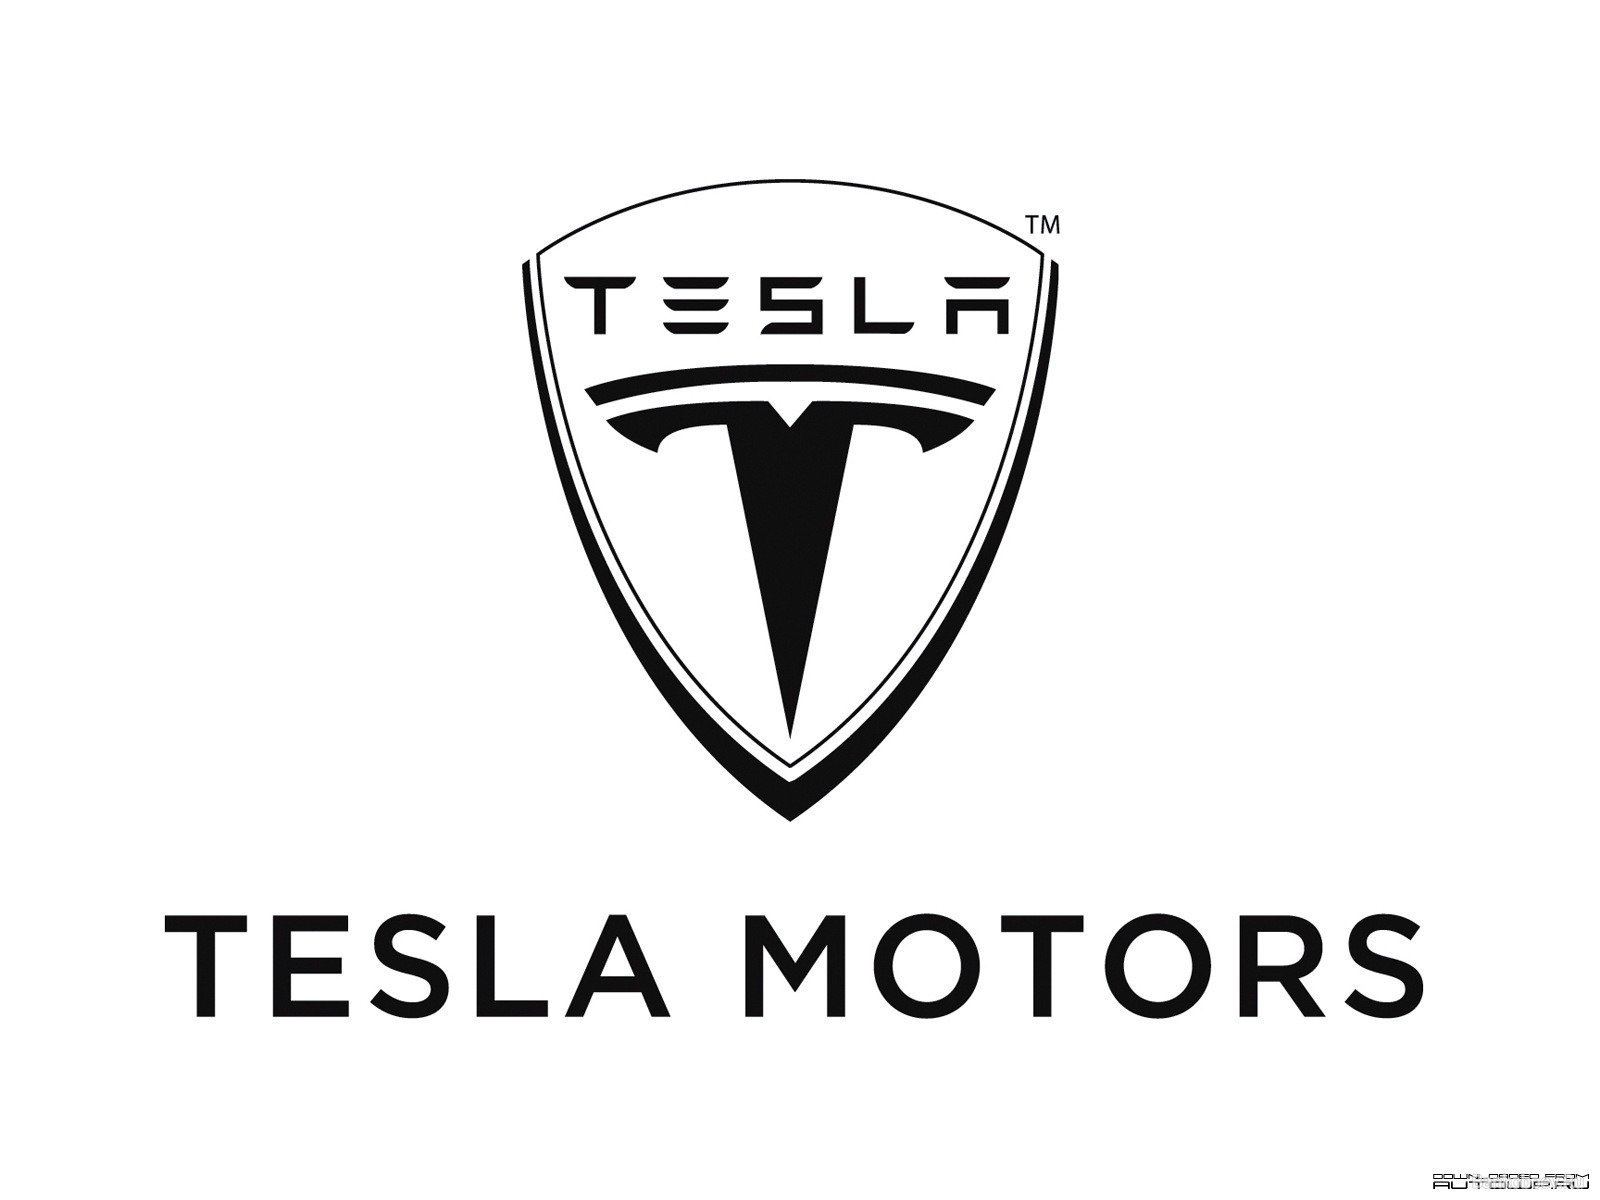 Stock to watch tesla incnasdaq tsla tesla motors inc nasdaqtsla buycottarizona Gallery